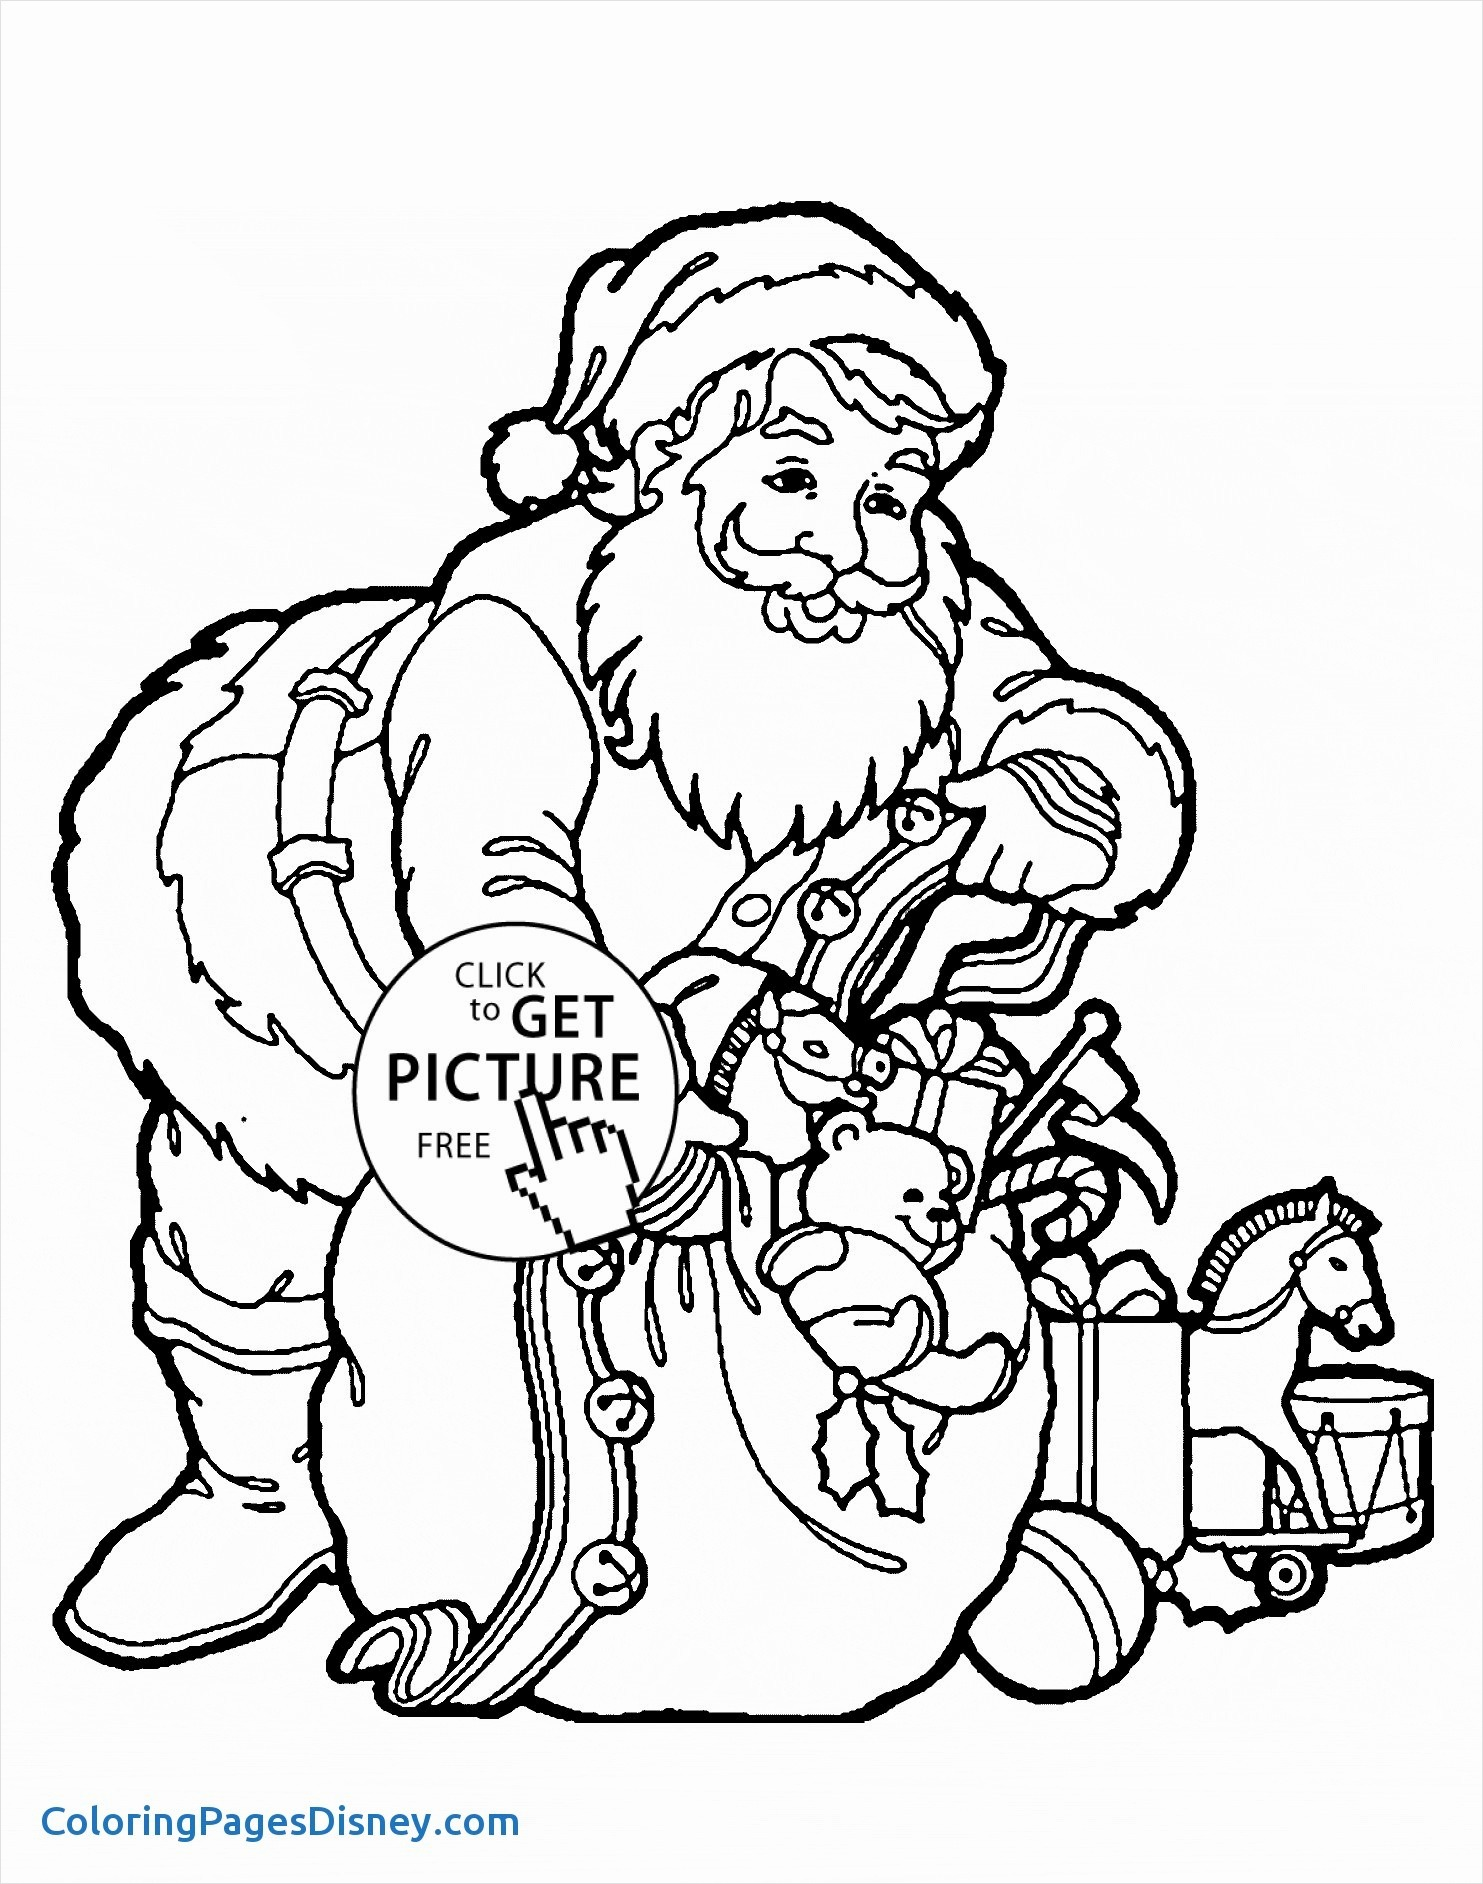 Ms Santa Claus Coloring Pages With Reindeer